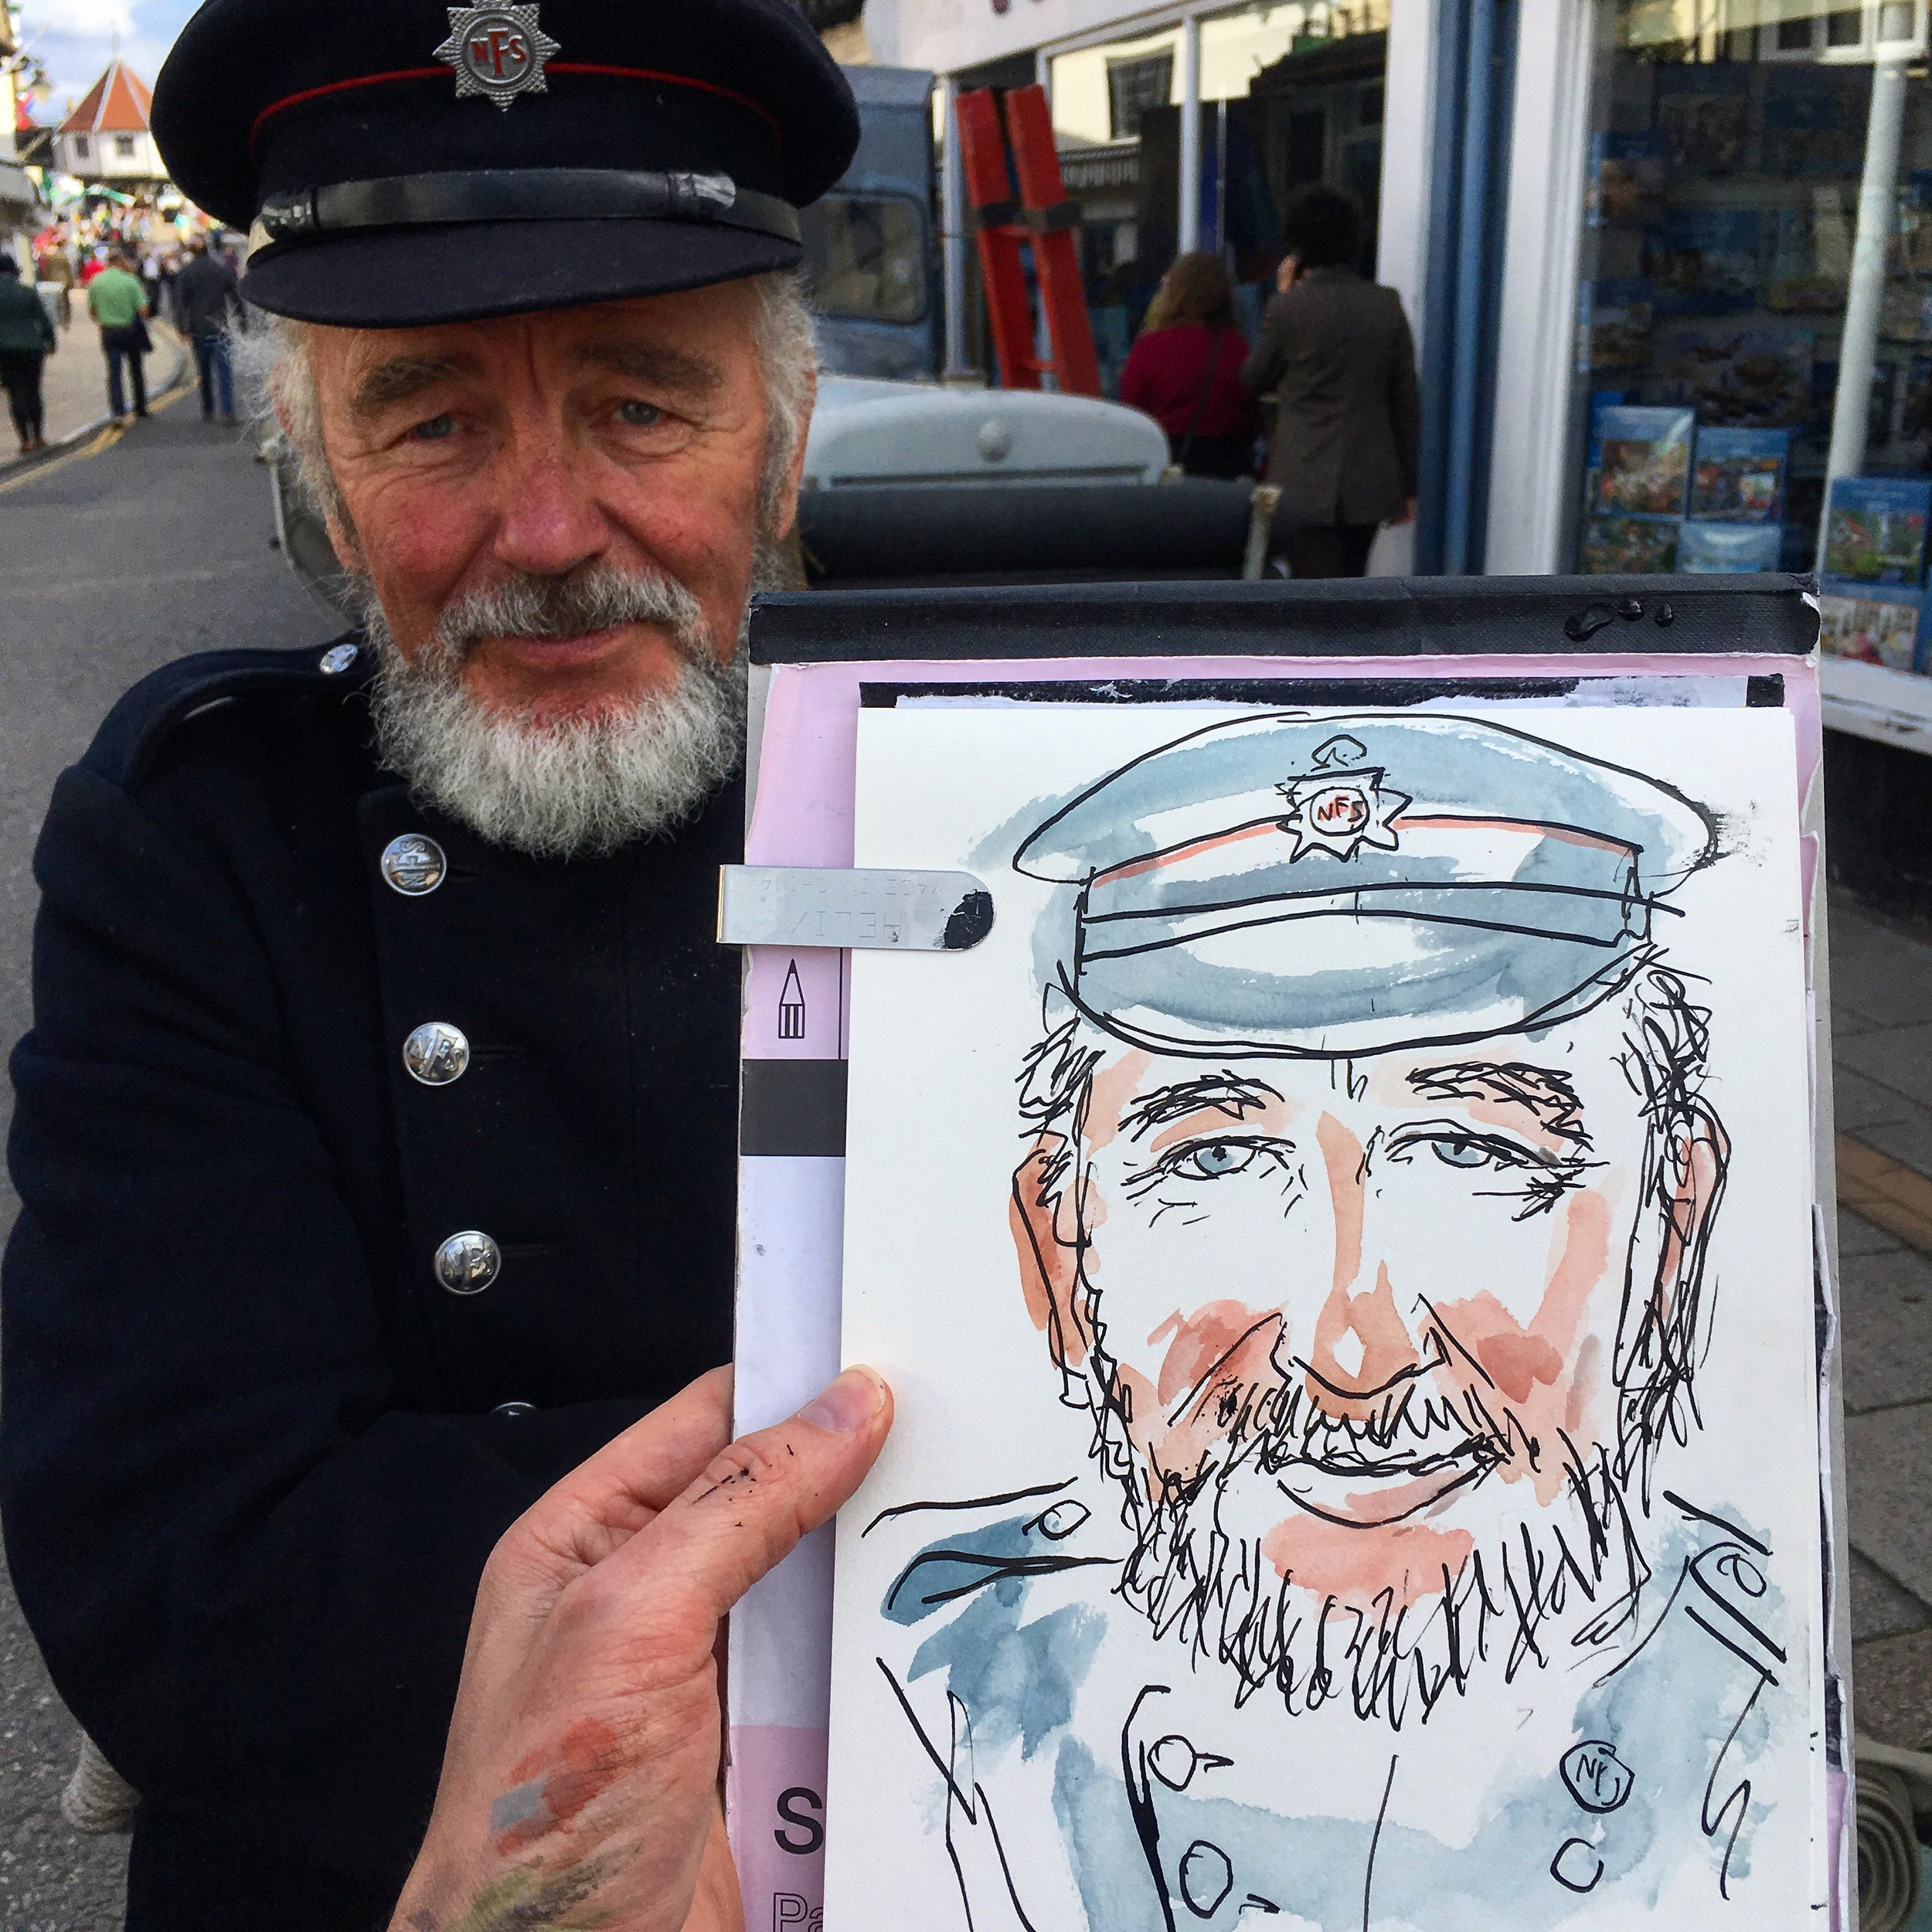 Chris Bonnick, a volunteer for the National Fire Museum as drawn on location.